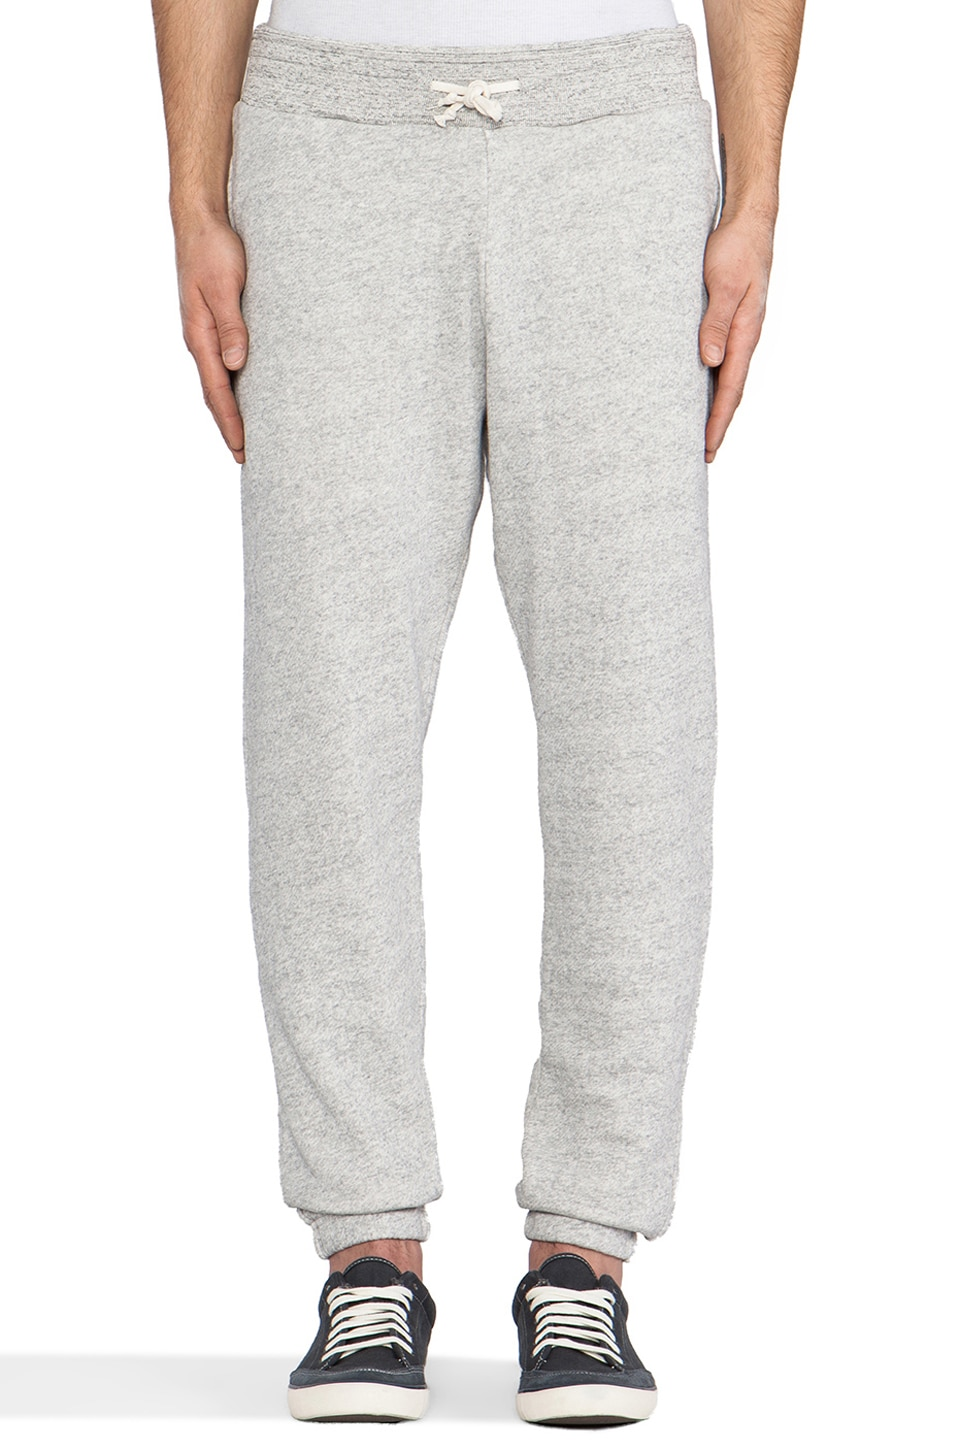 Scotch & Soda Home Alone Sweatpant in Grey Melange